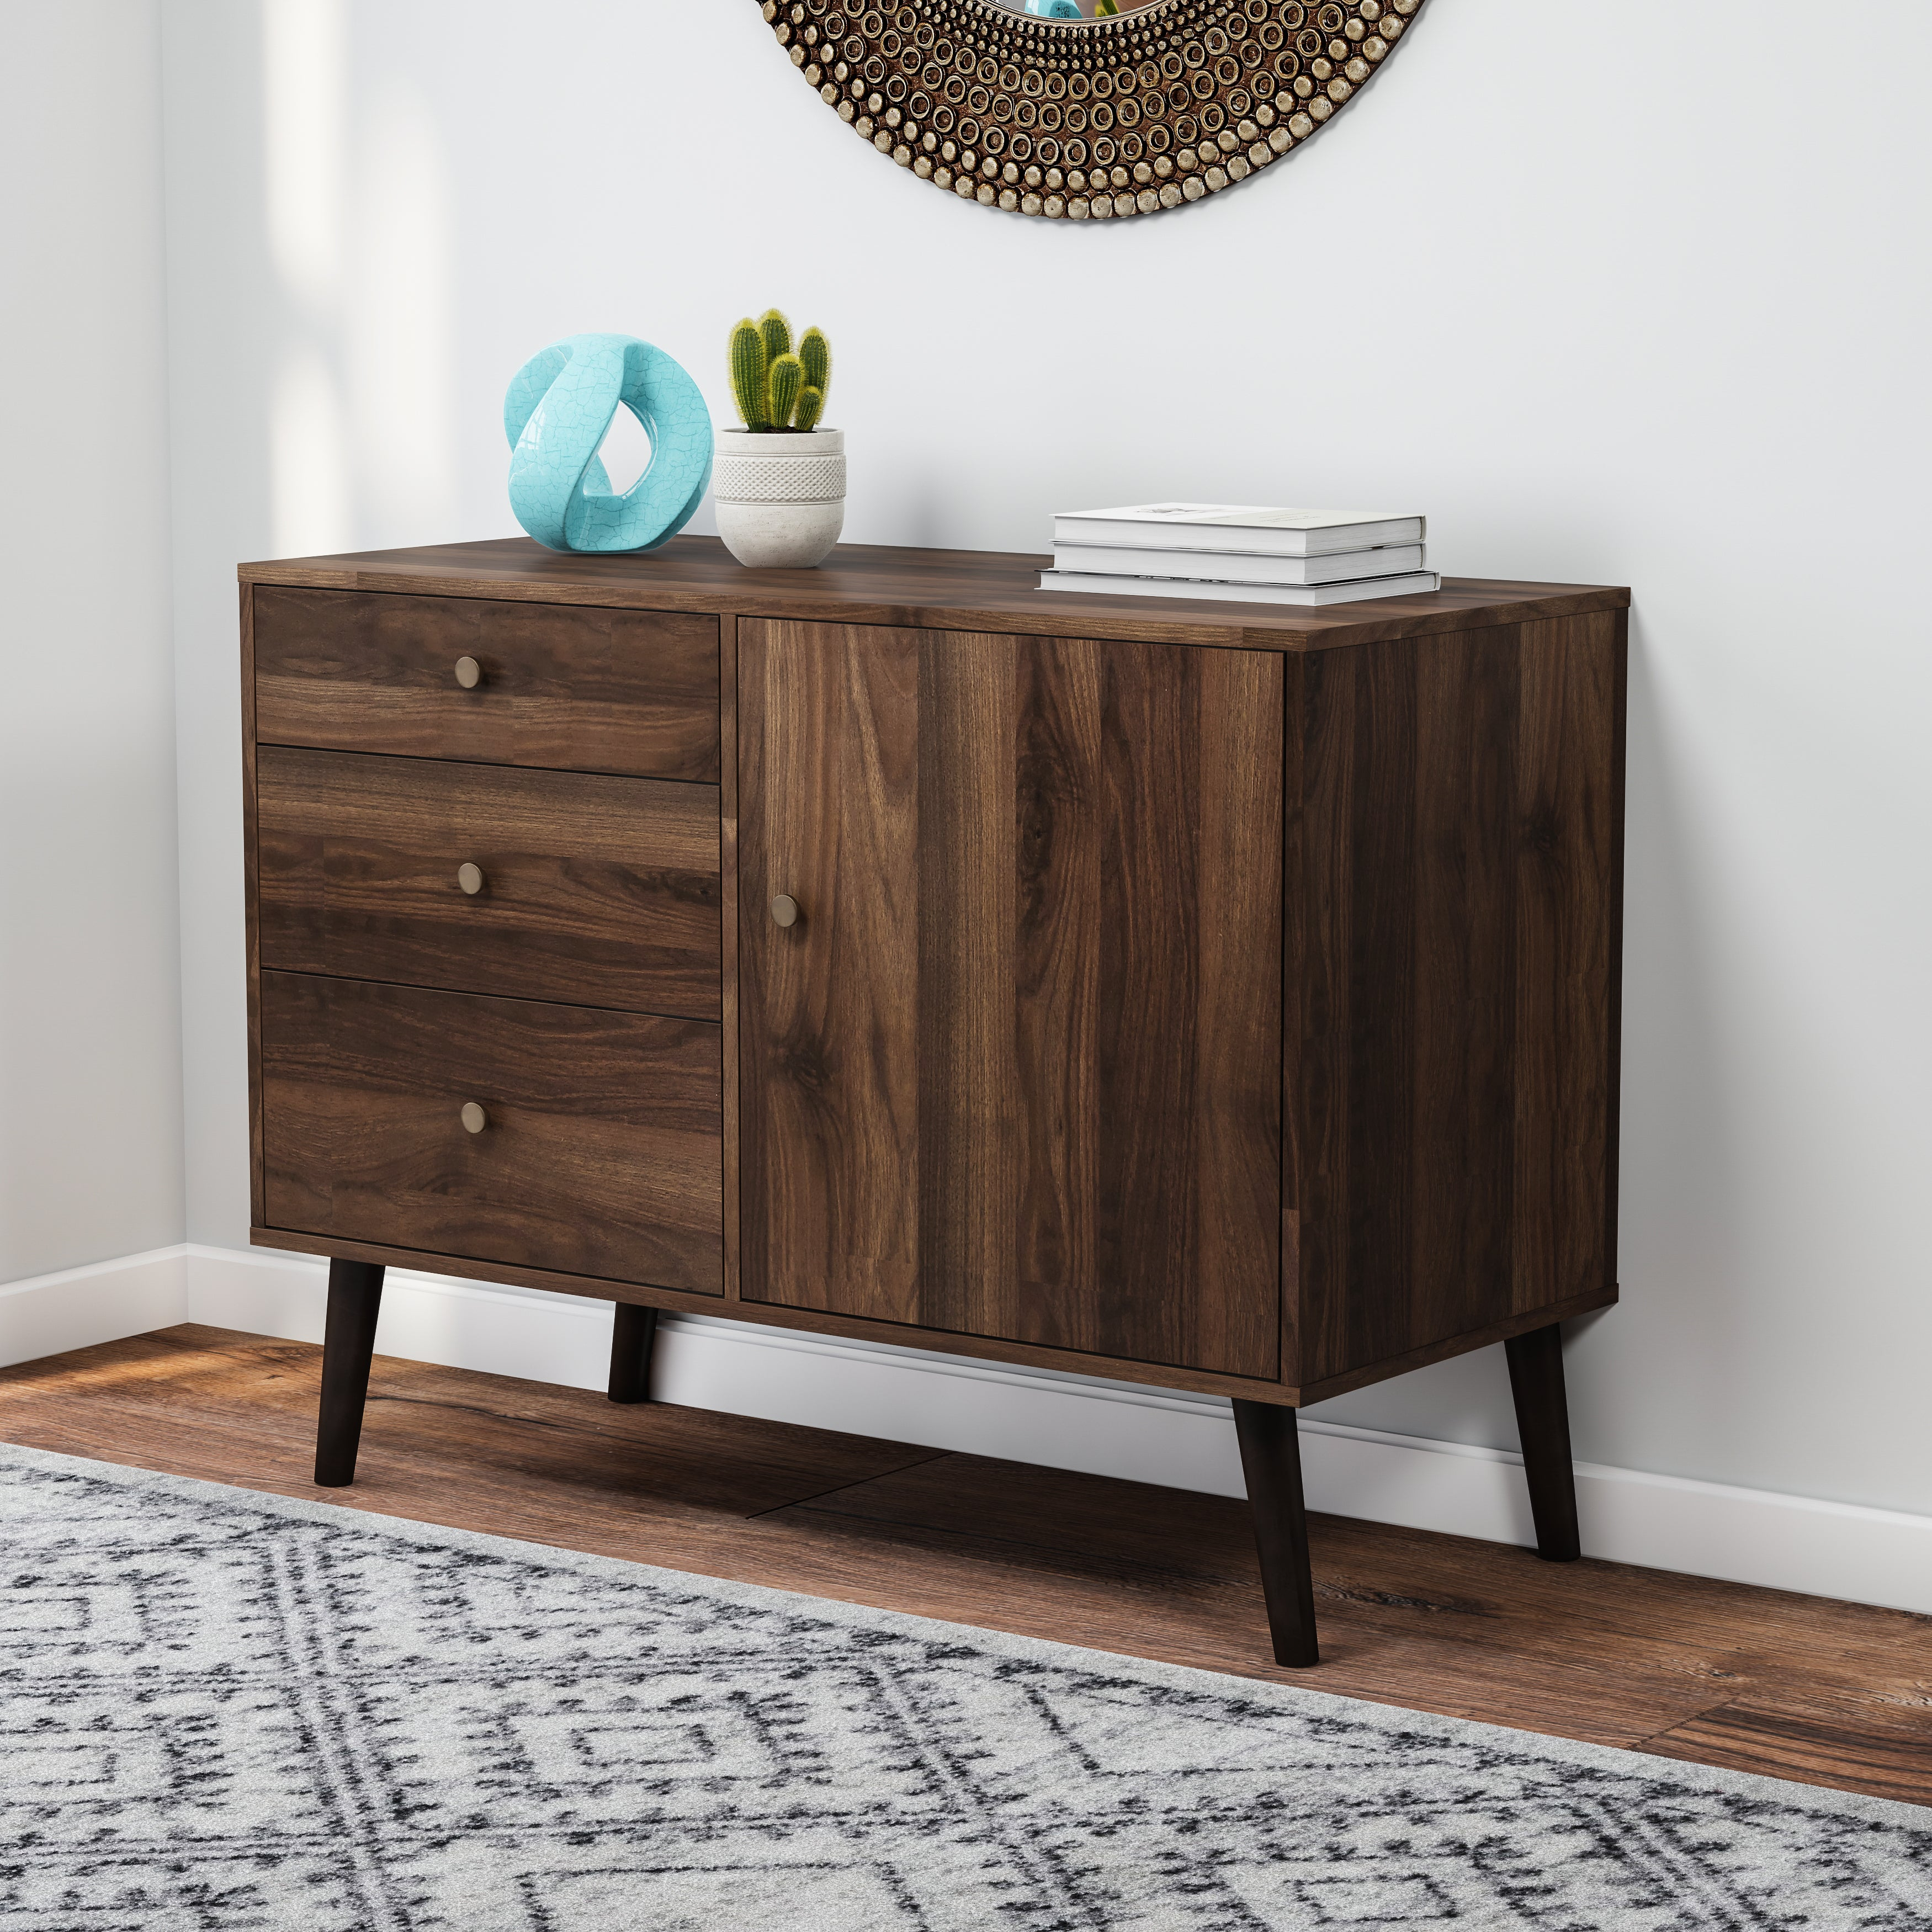 Carson Carrington Horsens Mid Century Buffet For Mid Century White Buffets (View 9 of 30)